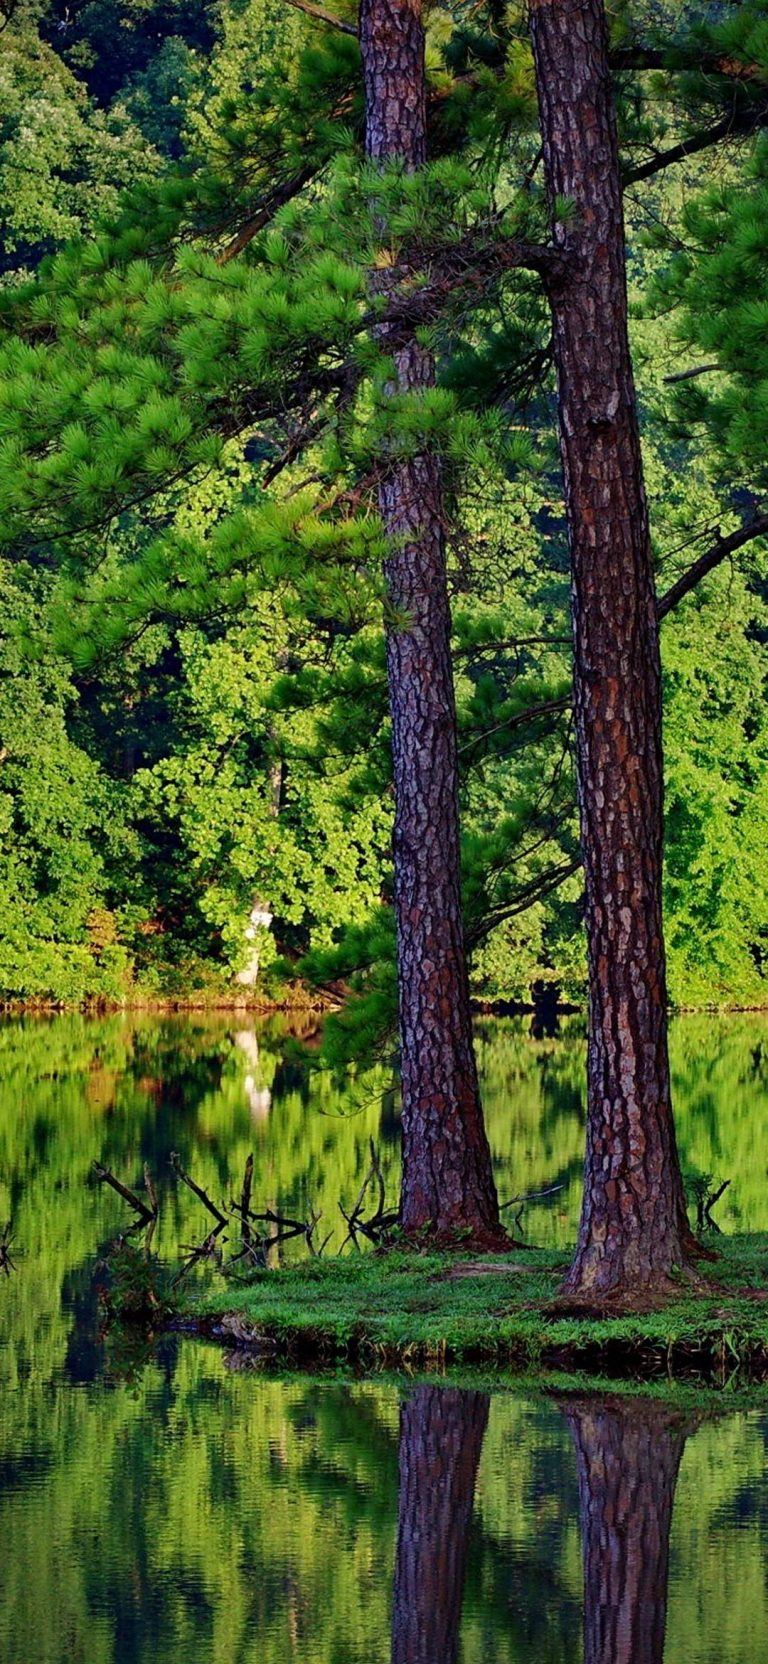 Green Trees Forest Lakes Reflections 1080x2340 768x1664